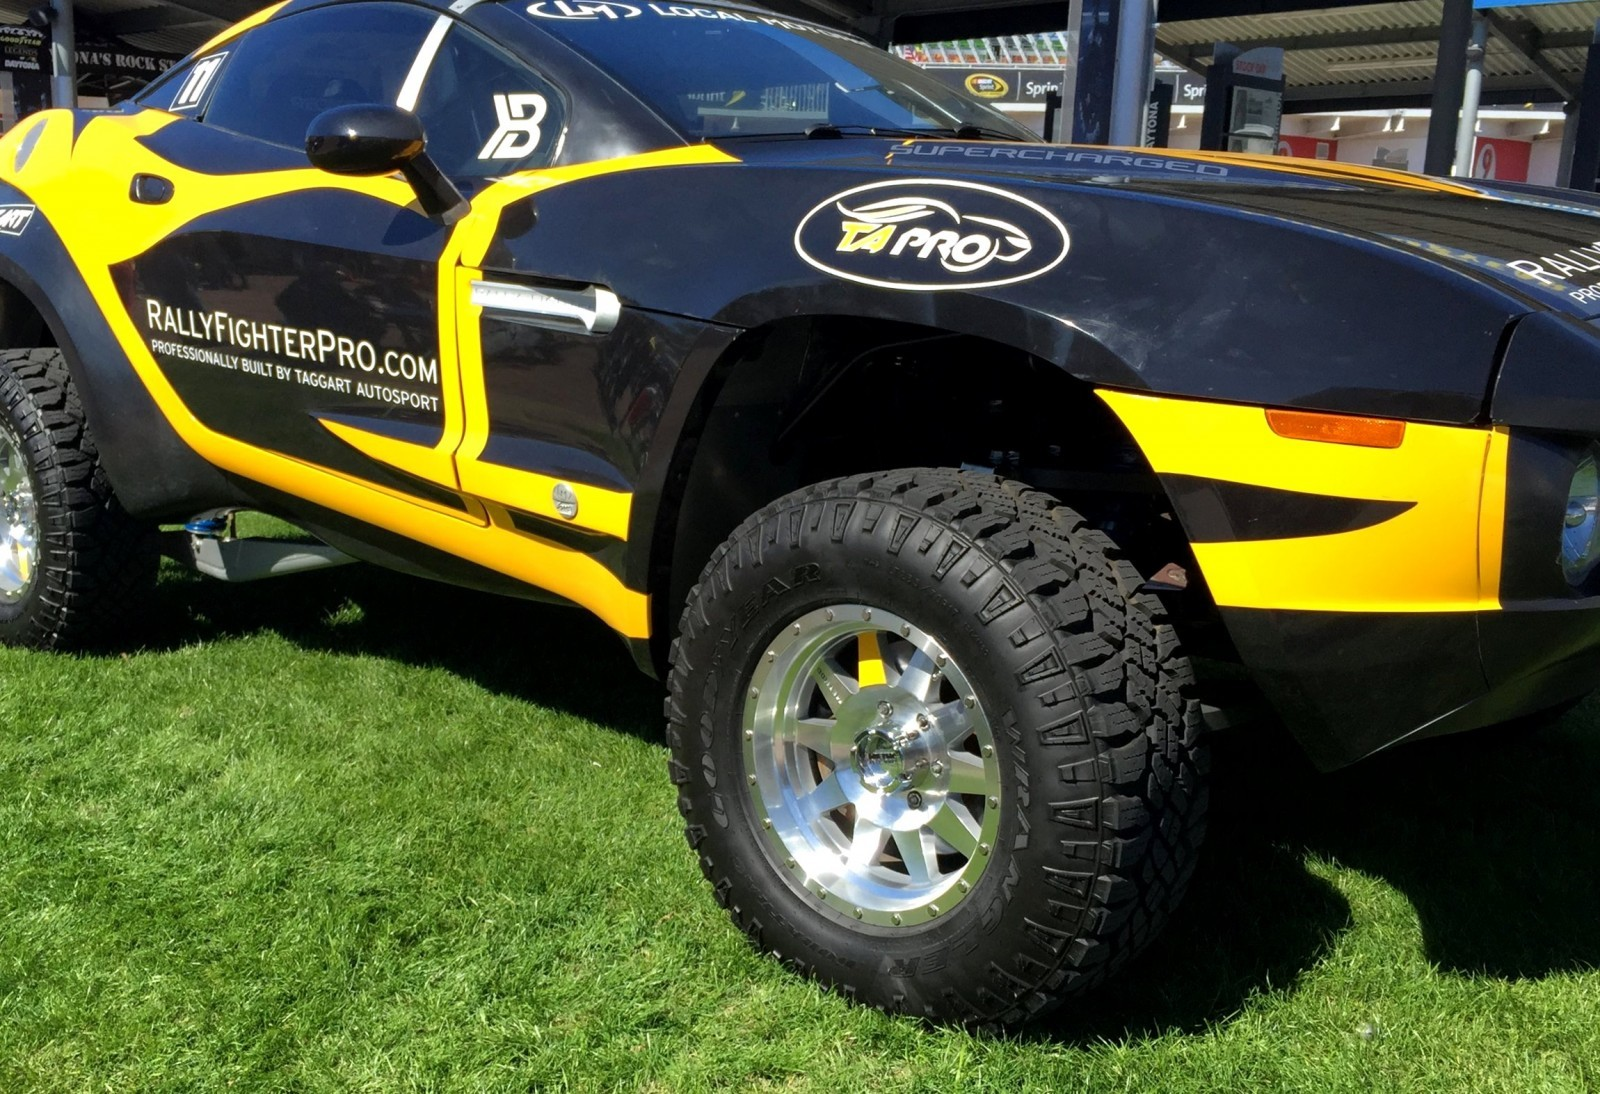 2015 Rally Fighter PRO By Taggart Autosport 19